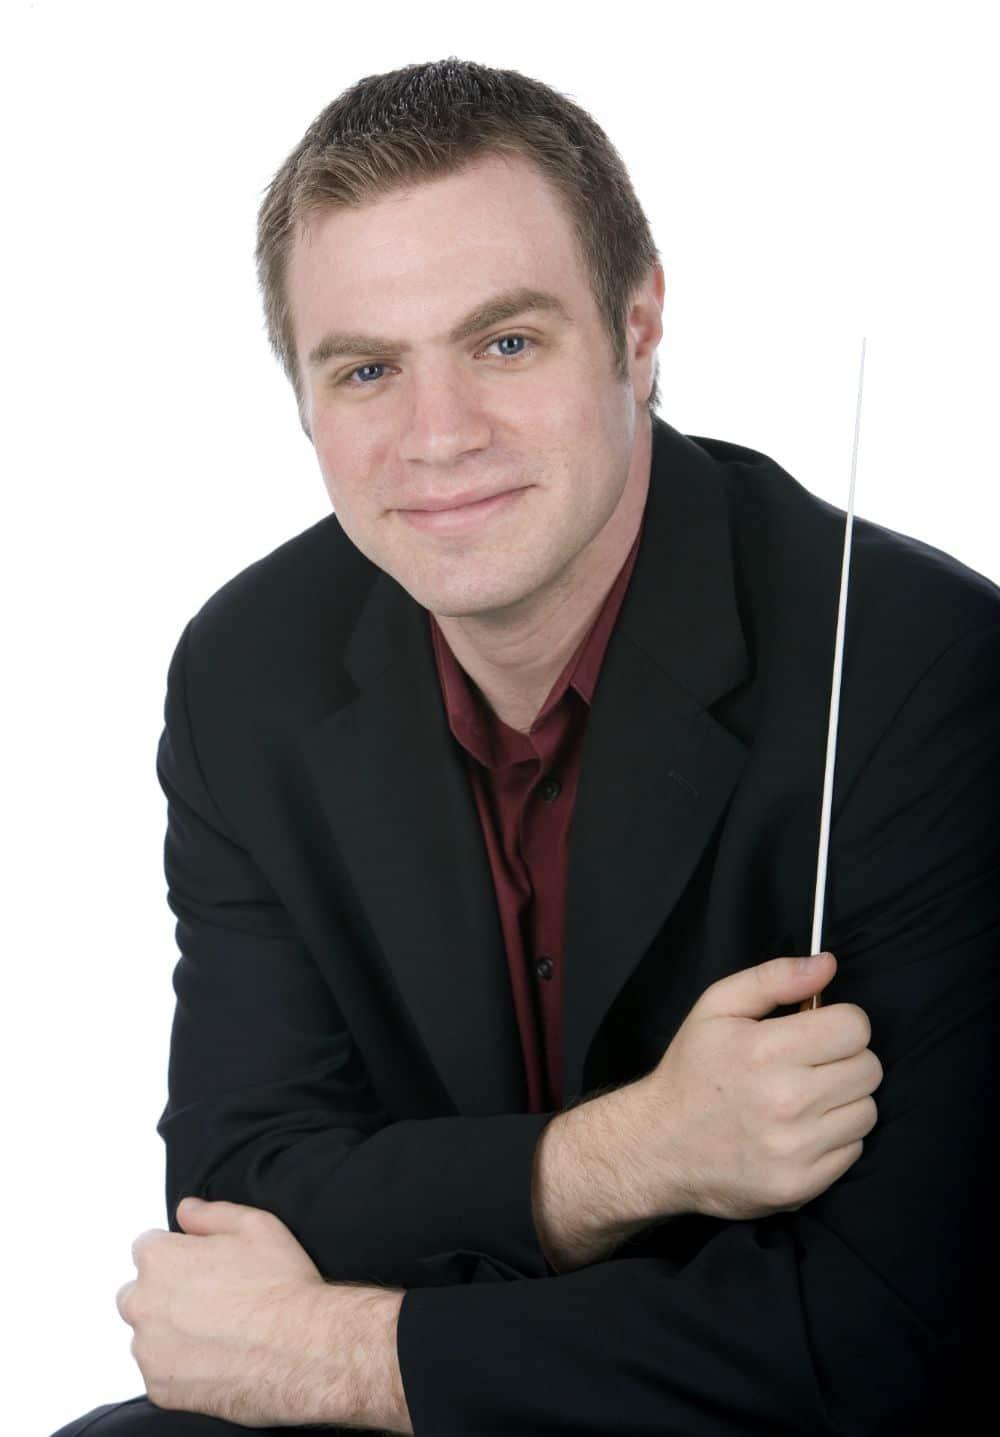 Sub conductor, 31, jumps in at NY Philharmonic